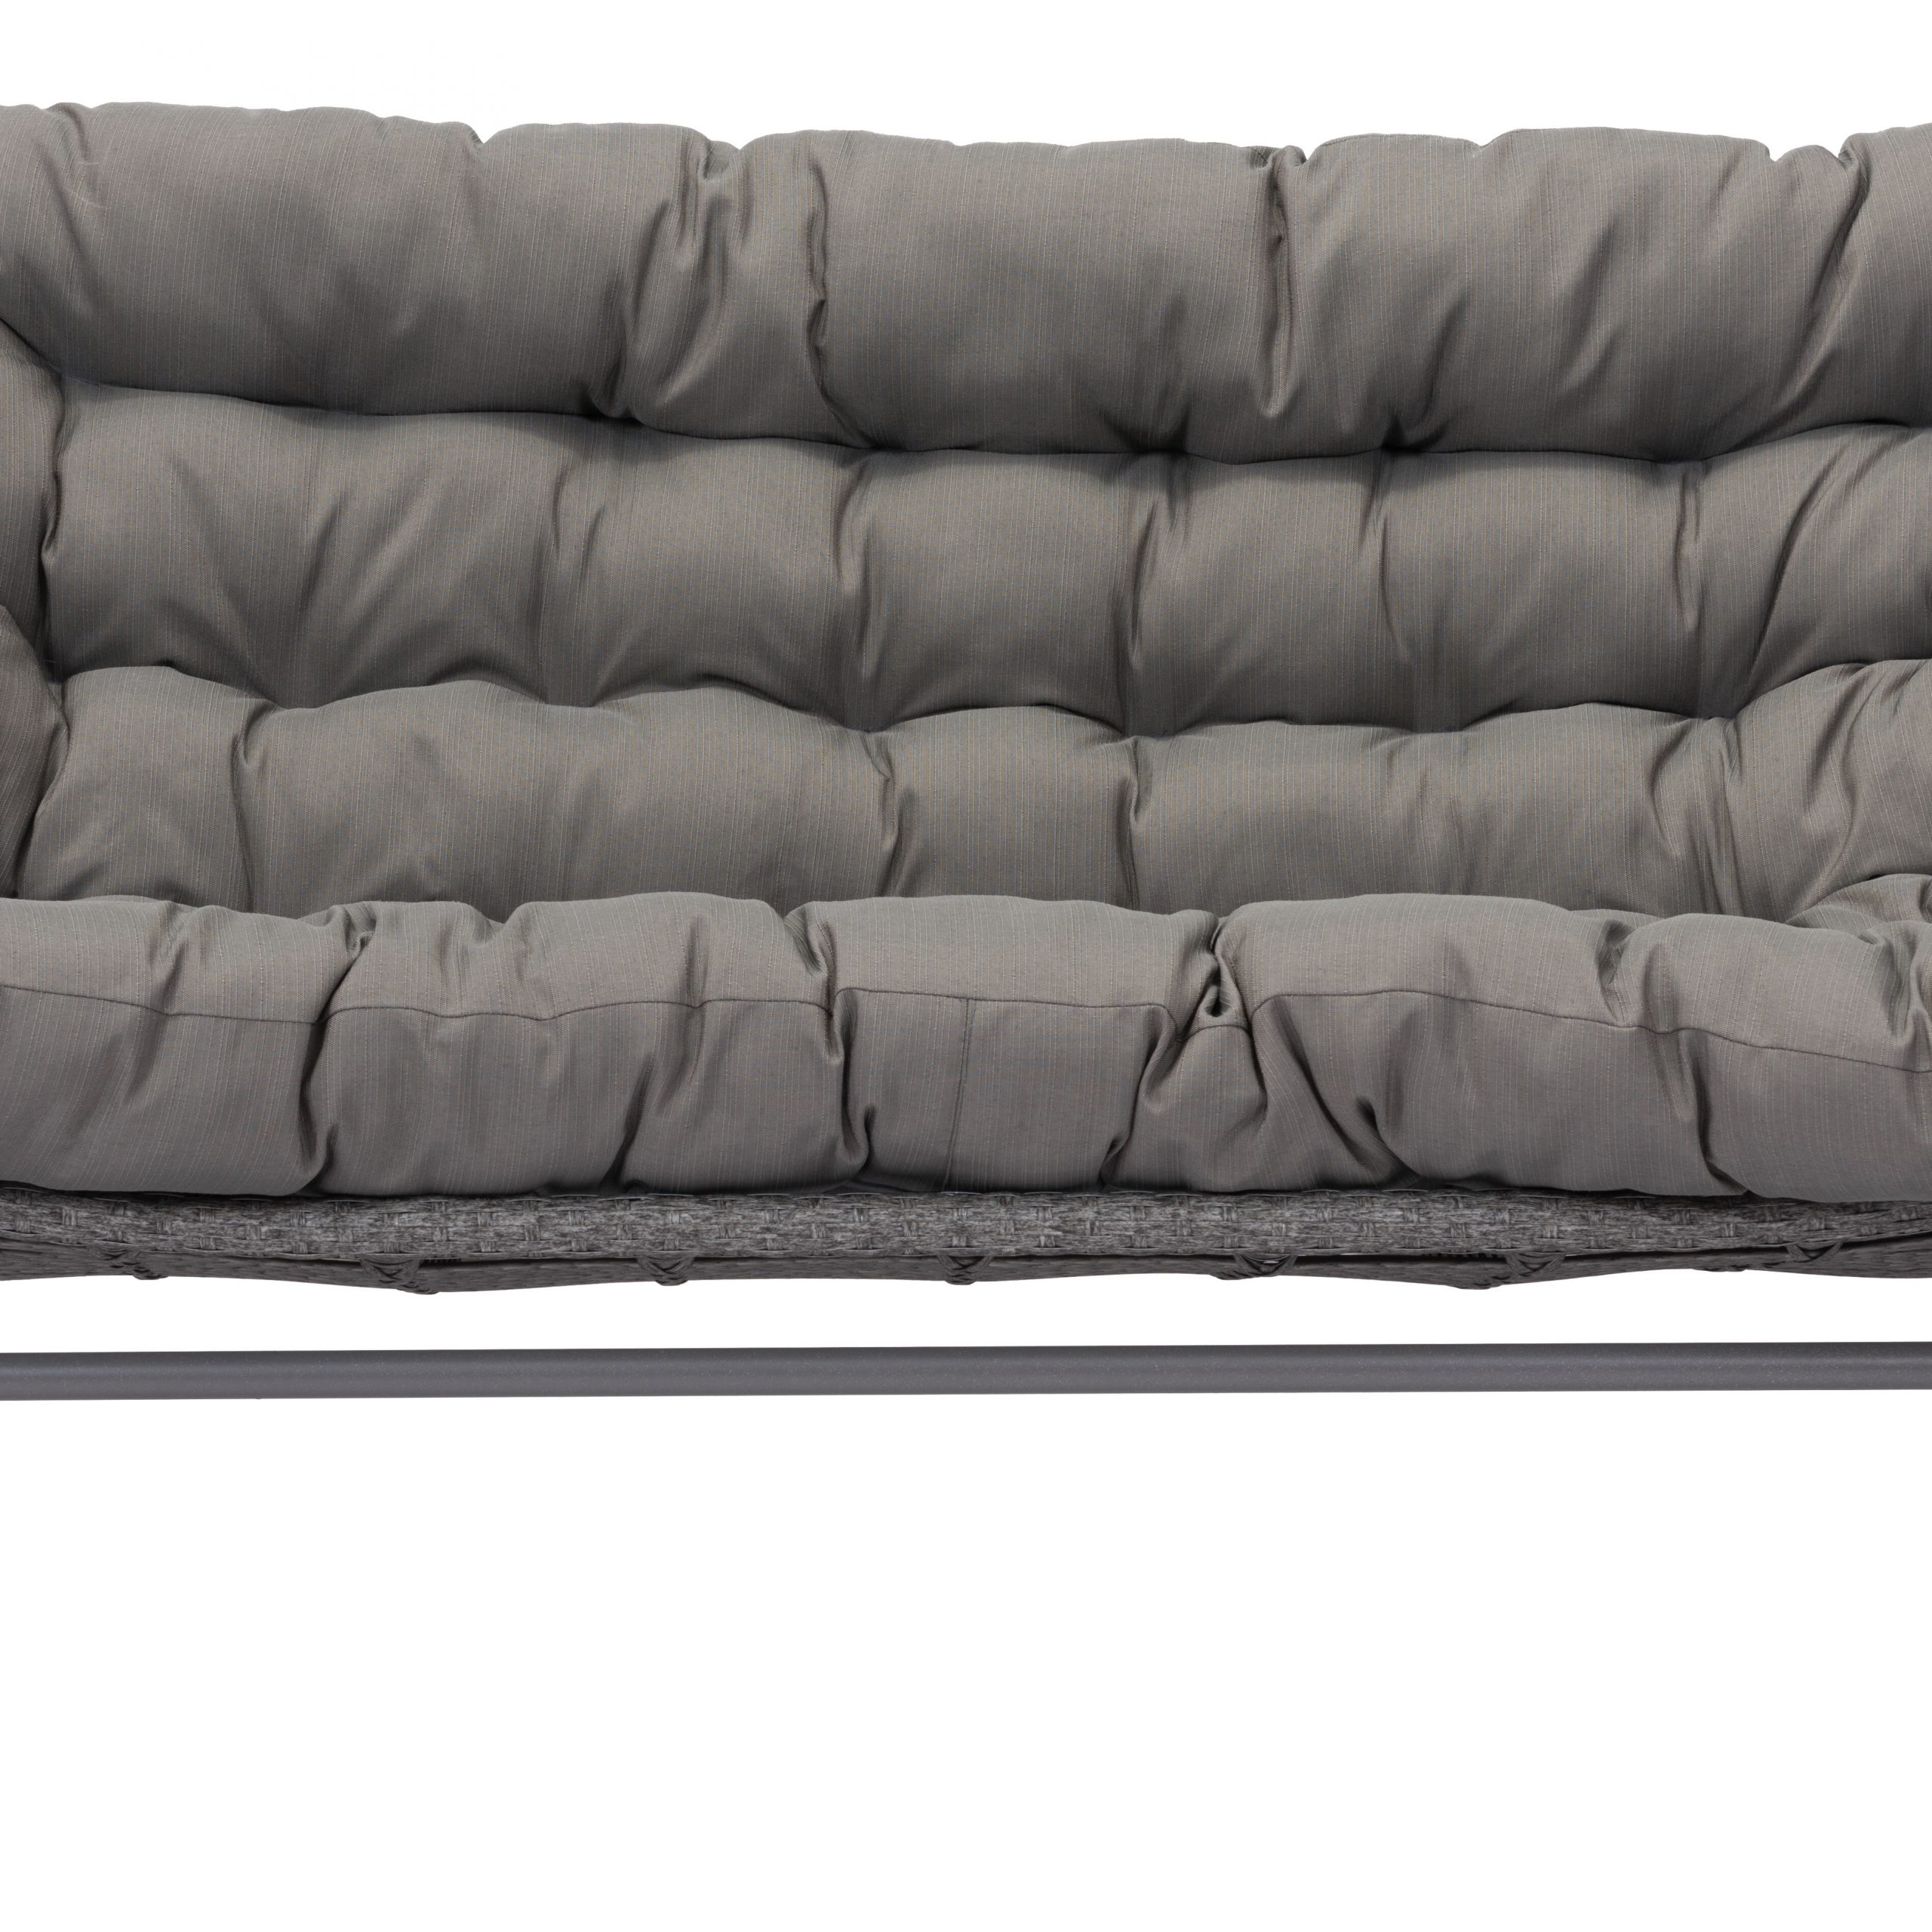 Well Known Repp Patio Sofas With Cushion Pertaining To Repp Patio Sofa With Cushion (View 2 of 25)